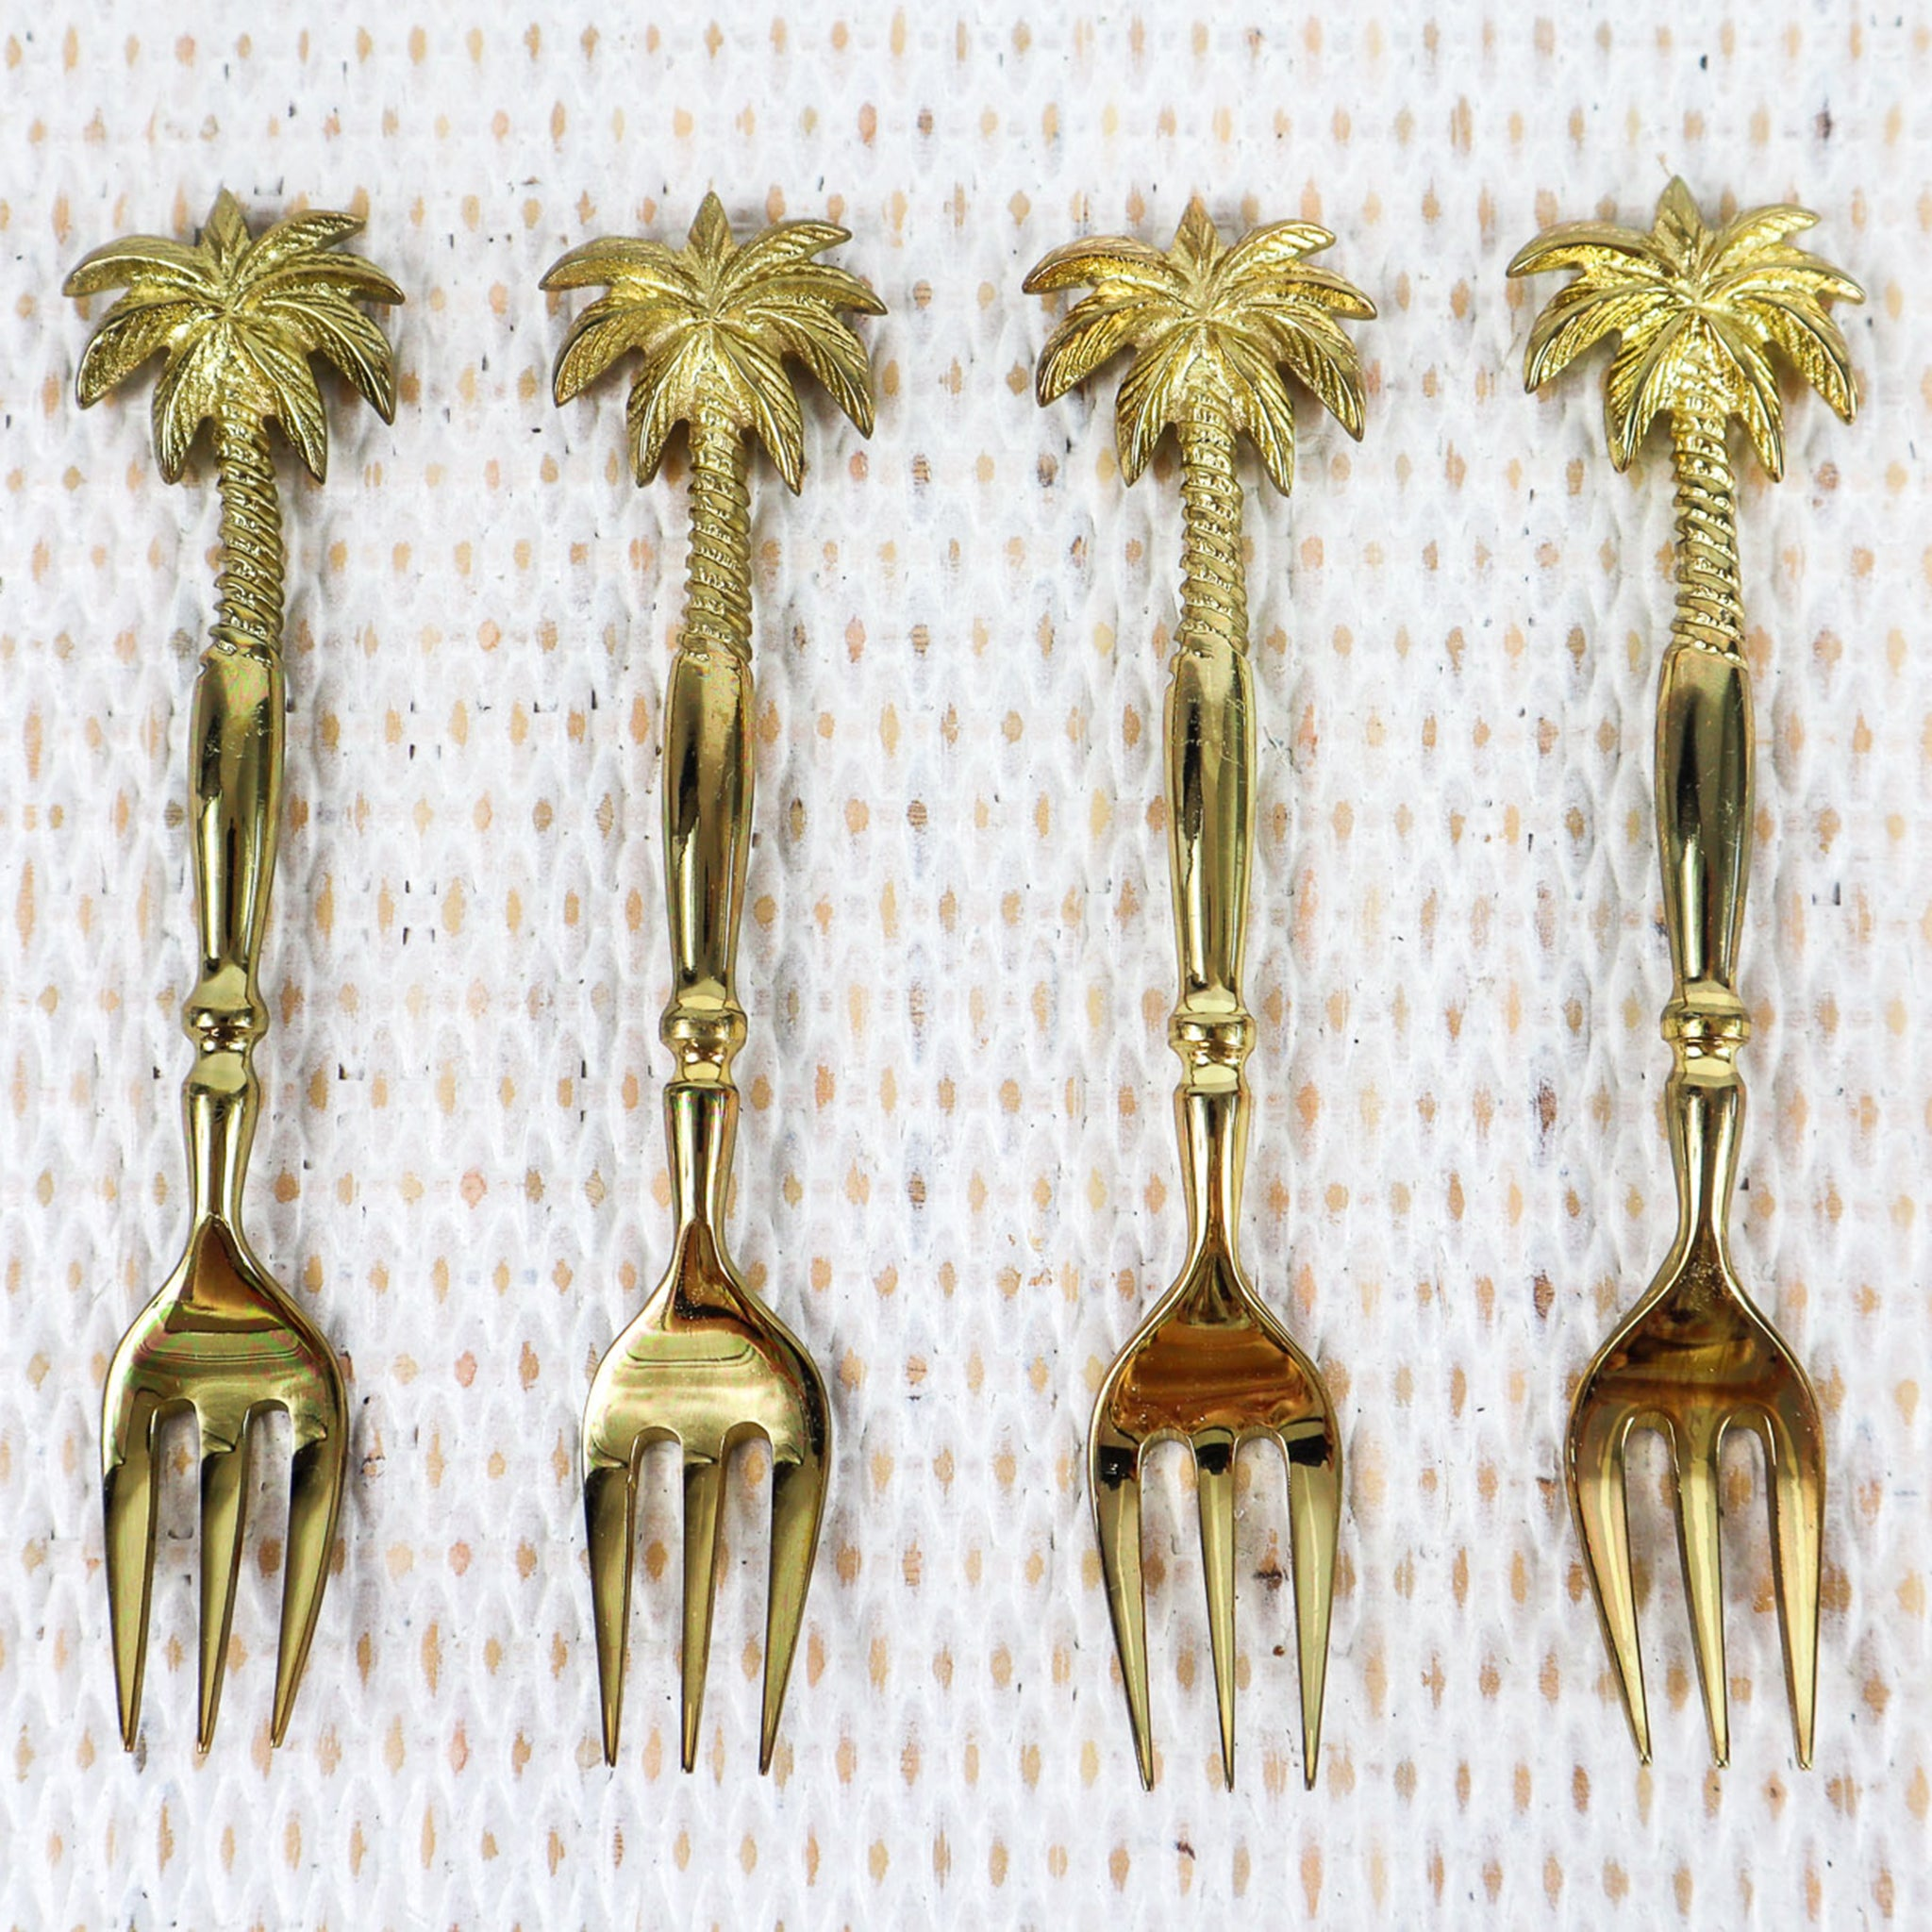 BRASS CAKE/DESERT FORKS - PINEAPPLE AND PALM TREE STYLE